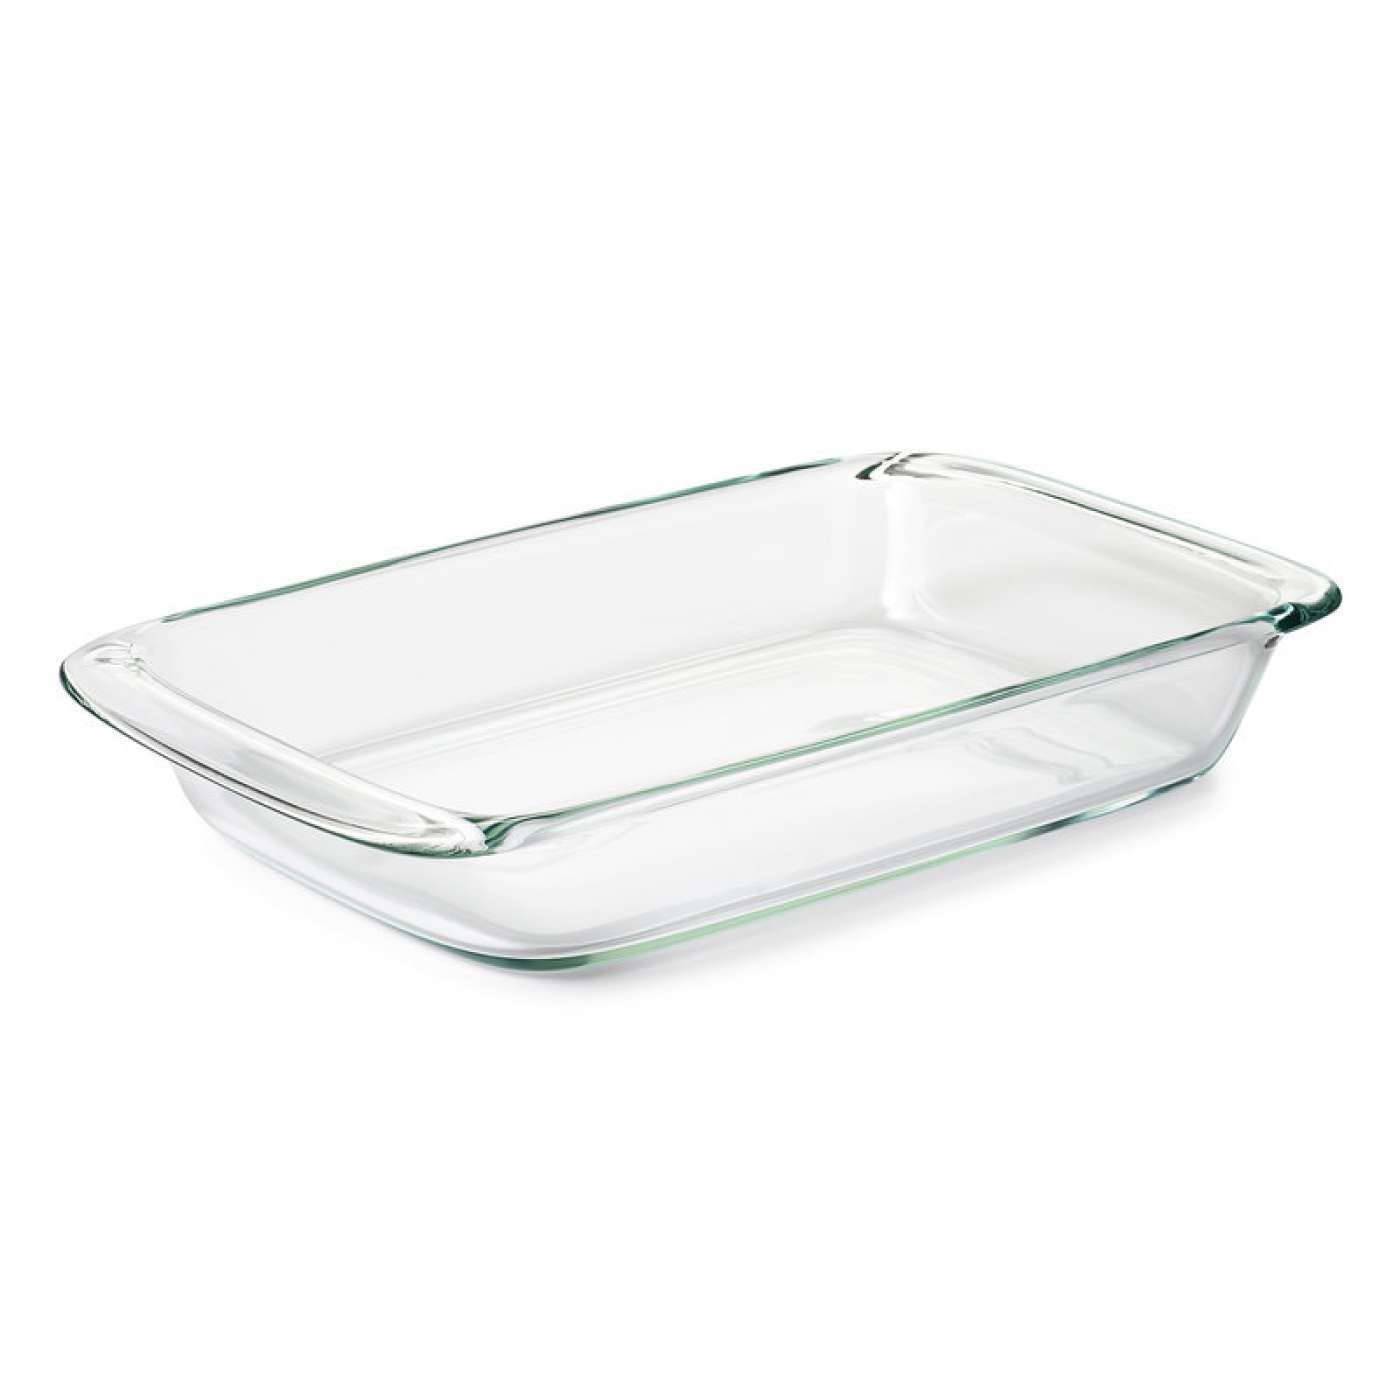 Glass 3 Qt Baking Dish With Images Glass Bakeware Set Baked